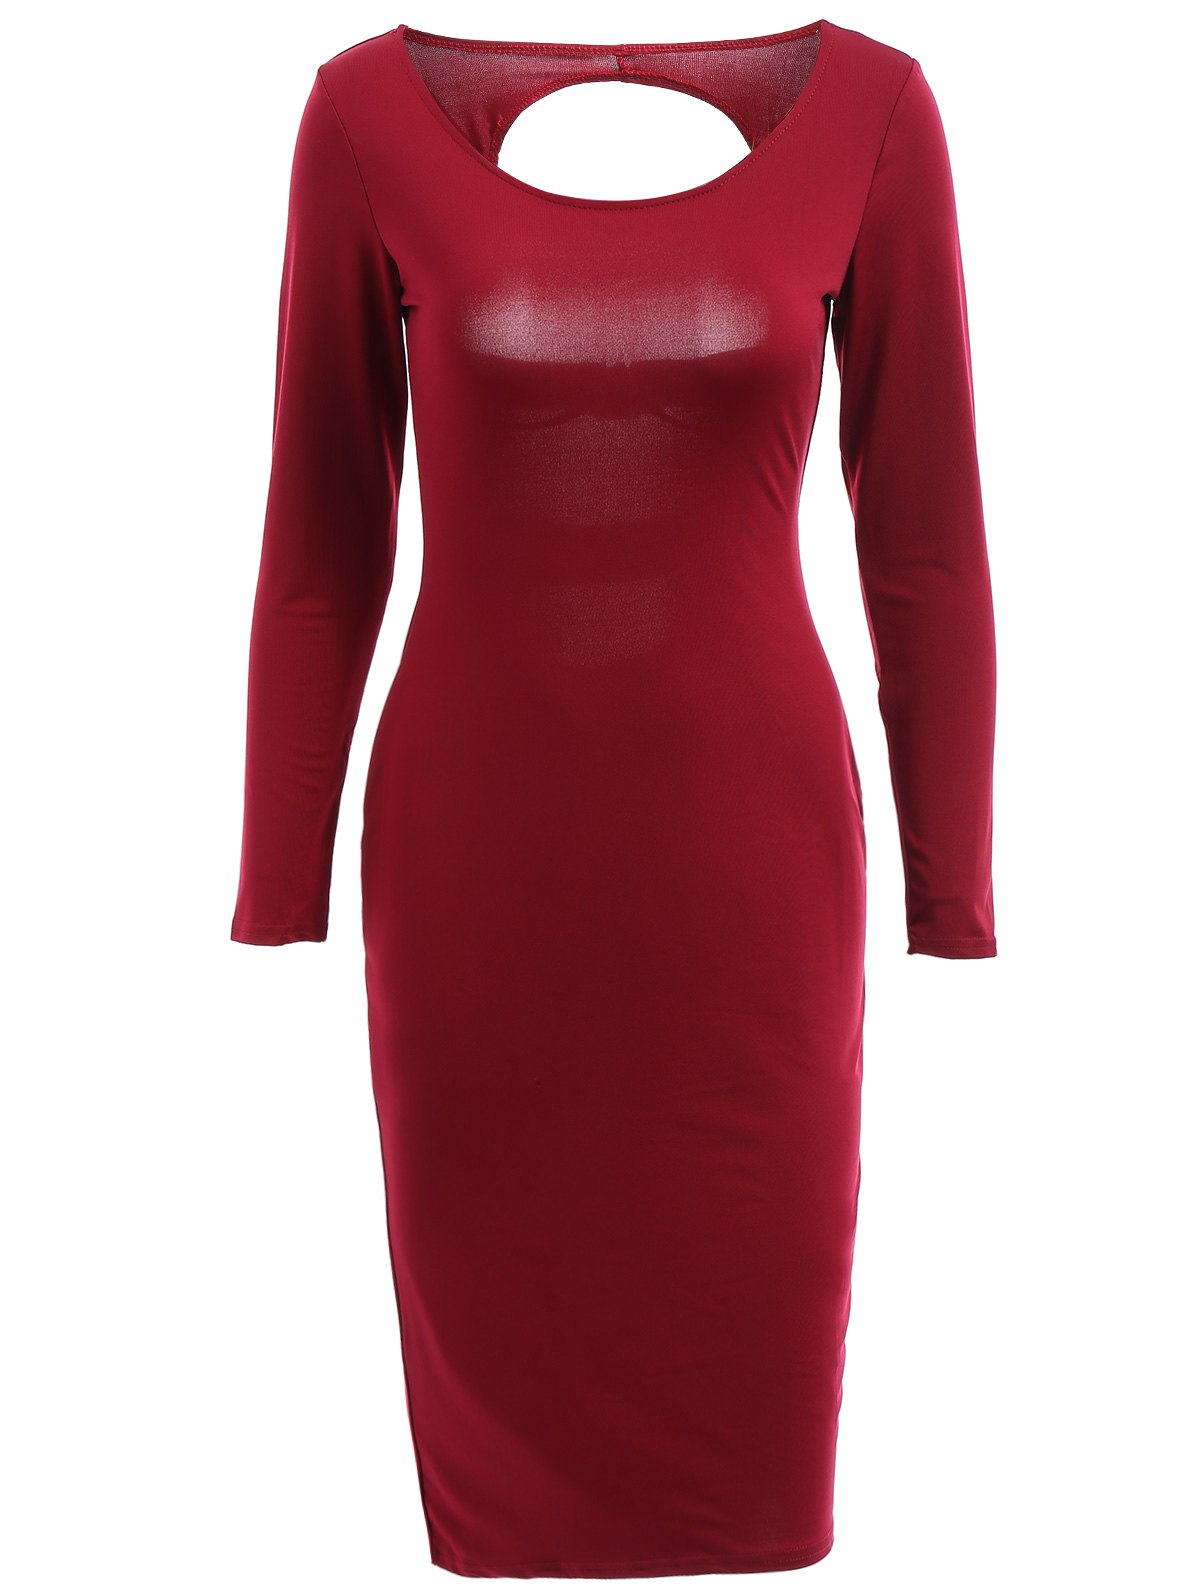 Alluring Scoop Neck Long Sleeve Cut Out Women's Bodycon Dress - WINE RED M